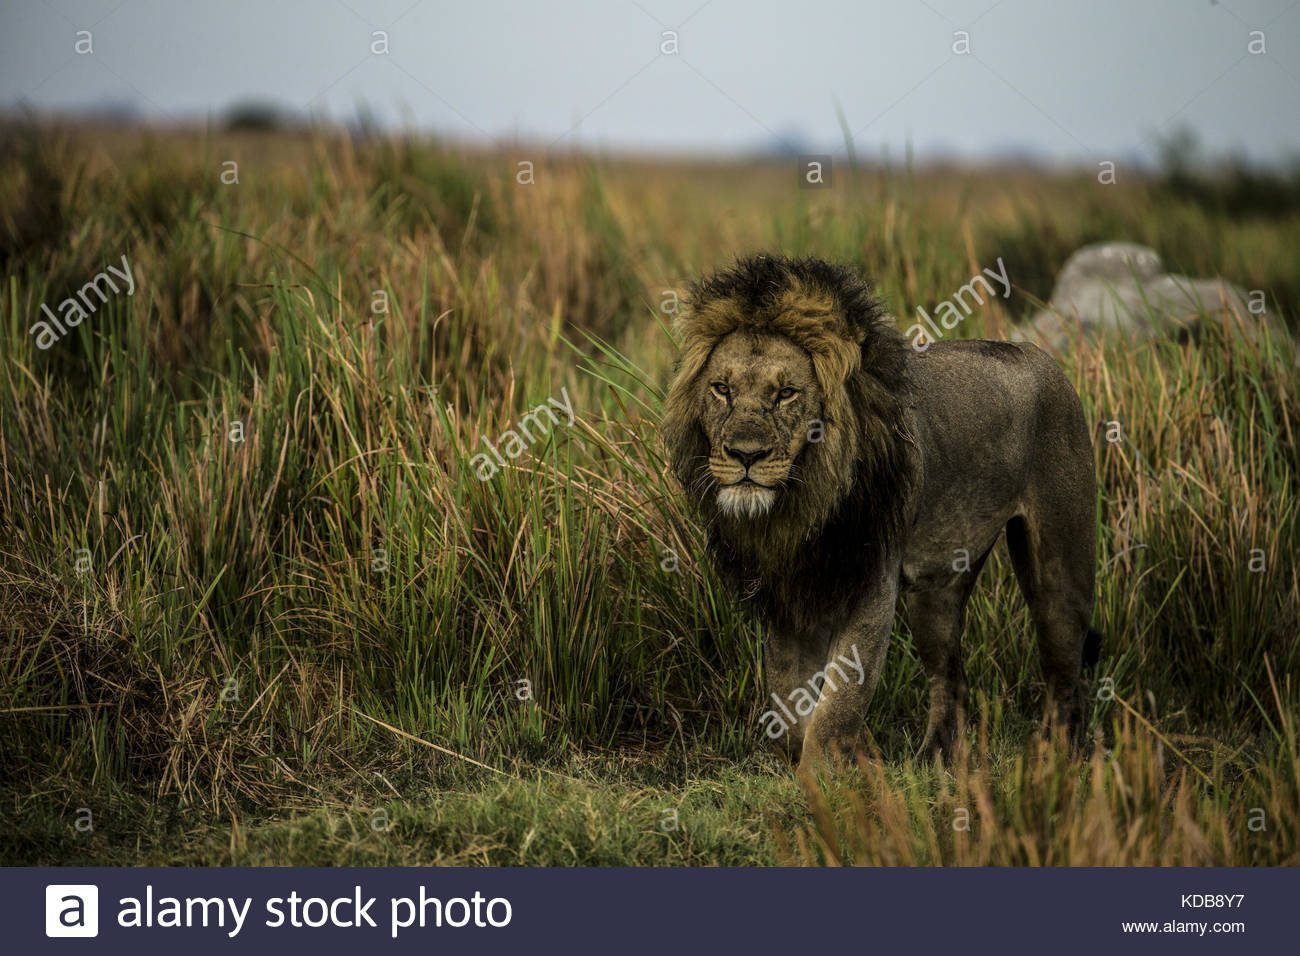 A male lion, Panthera leo, walks through the tall grass. - Stock Image